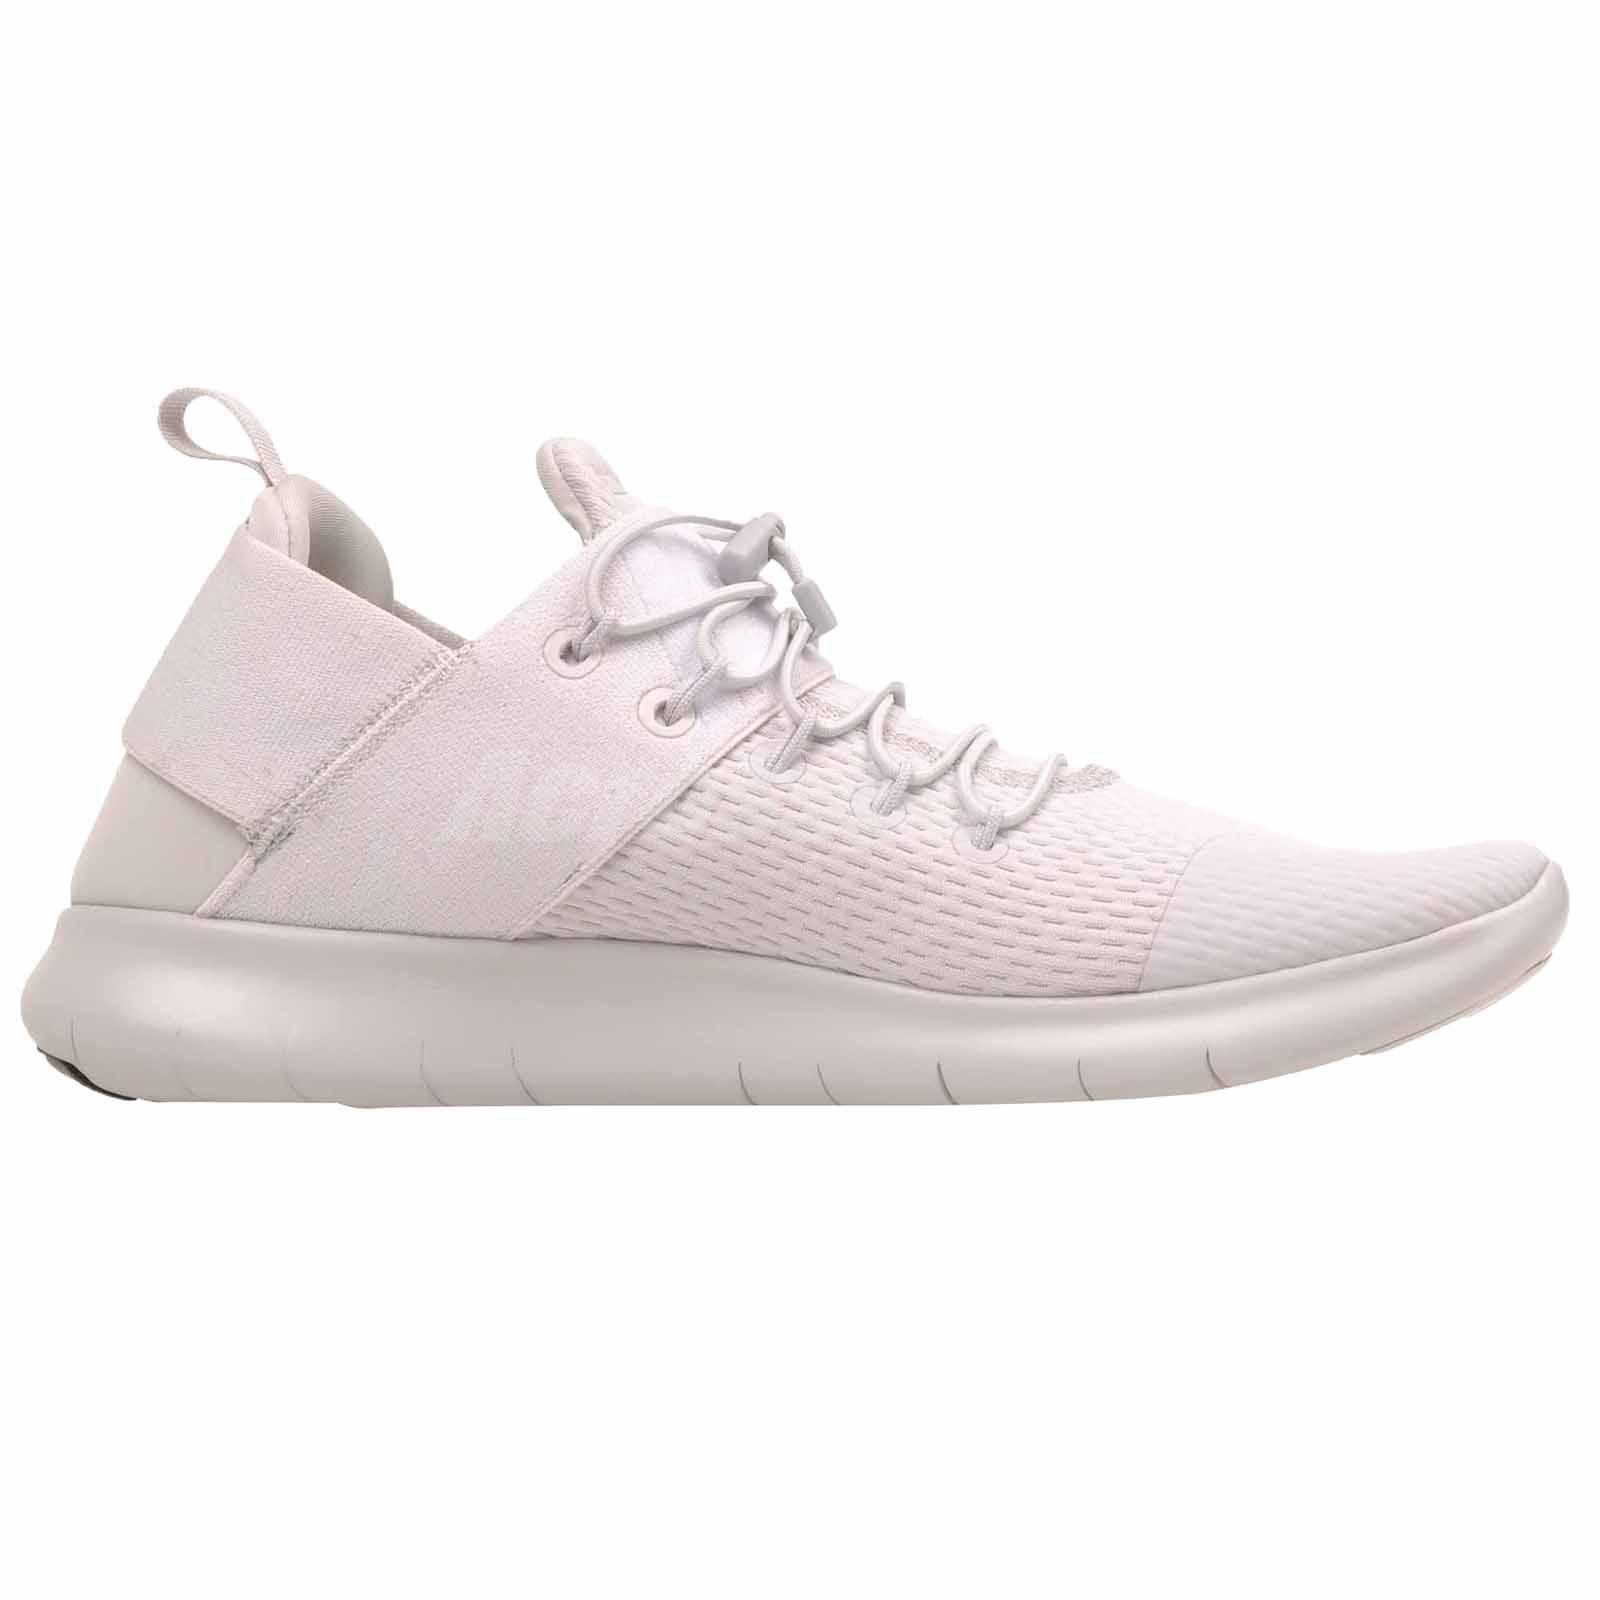 598254d448c1 Nike Free Rn Commuter 2017 Running Mens Shoes White Grey 880841-007 ...